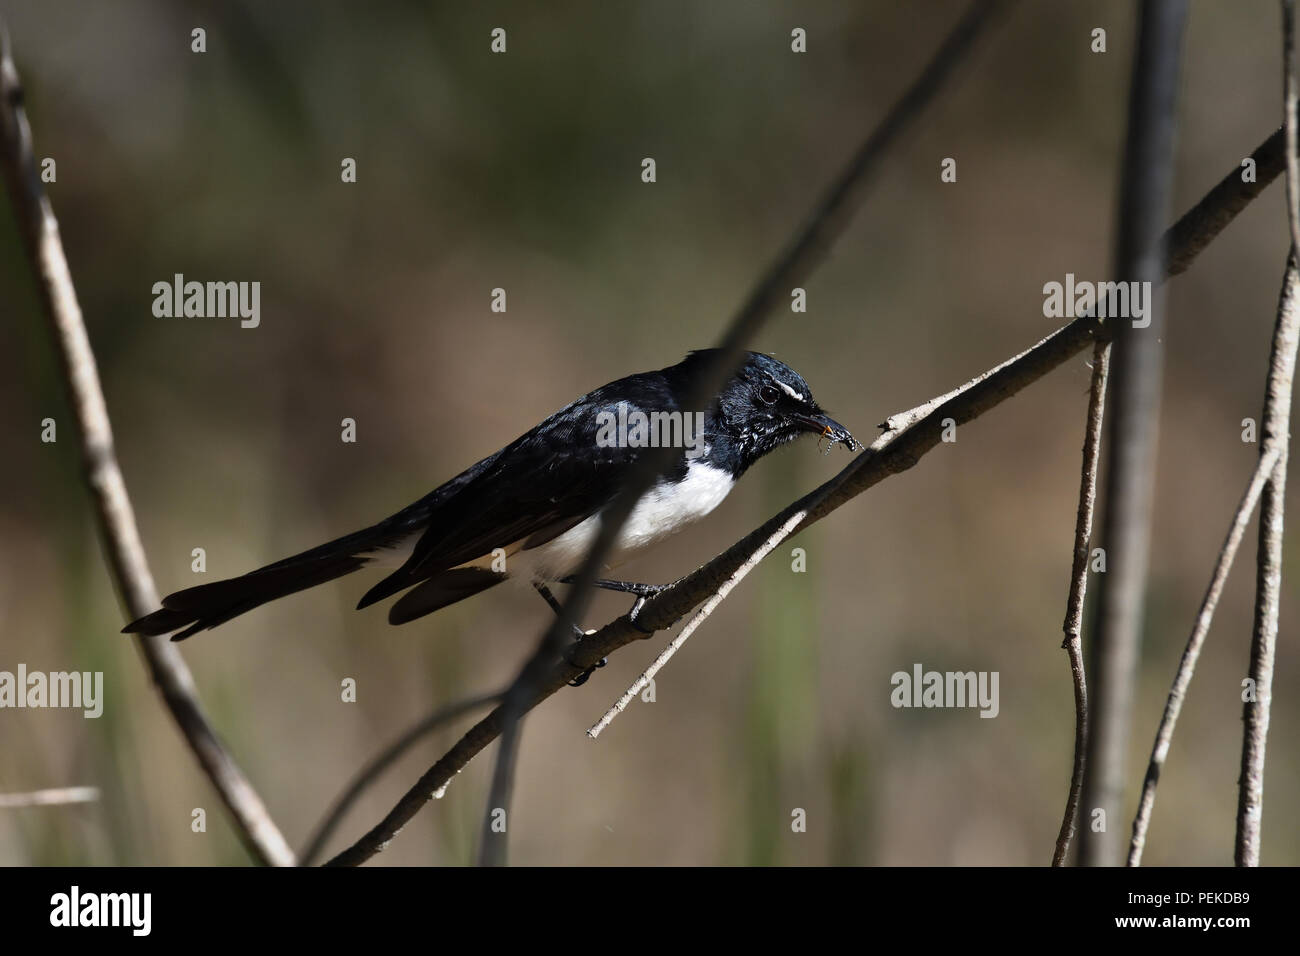 An Australian, Queensland Willie Wagtail ( Rhipidura leucophrys ) about to eat a Spider Stock Photo